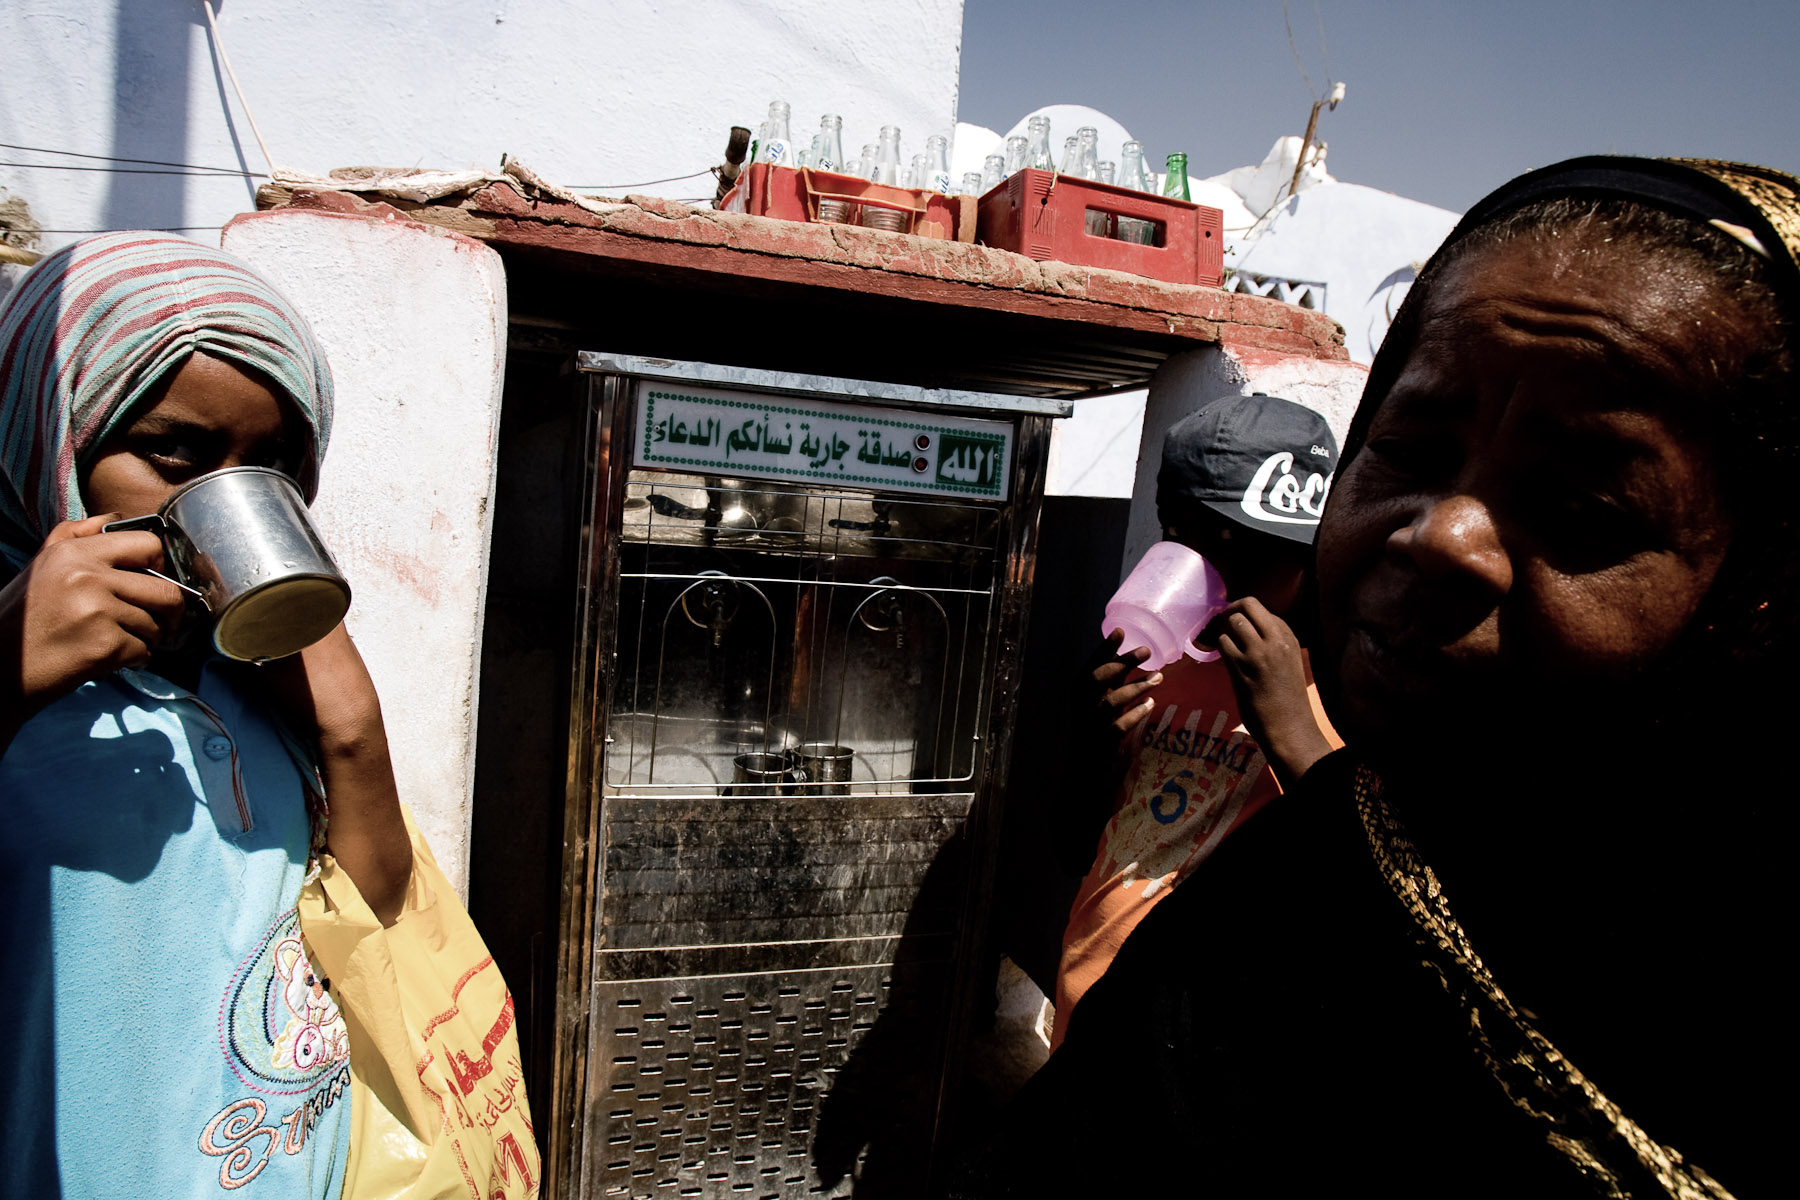 Nubian women drink water from a government funded machine in the Nubian village in Aswan, Egypt, on May 1, 2008.